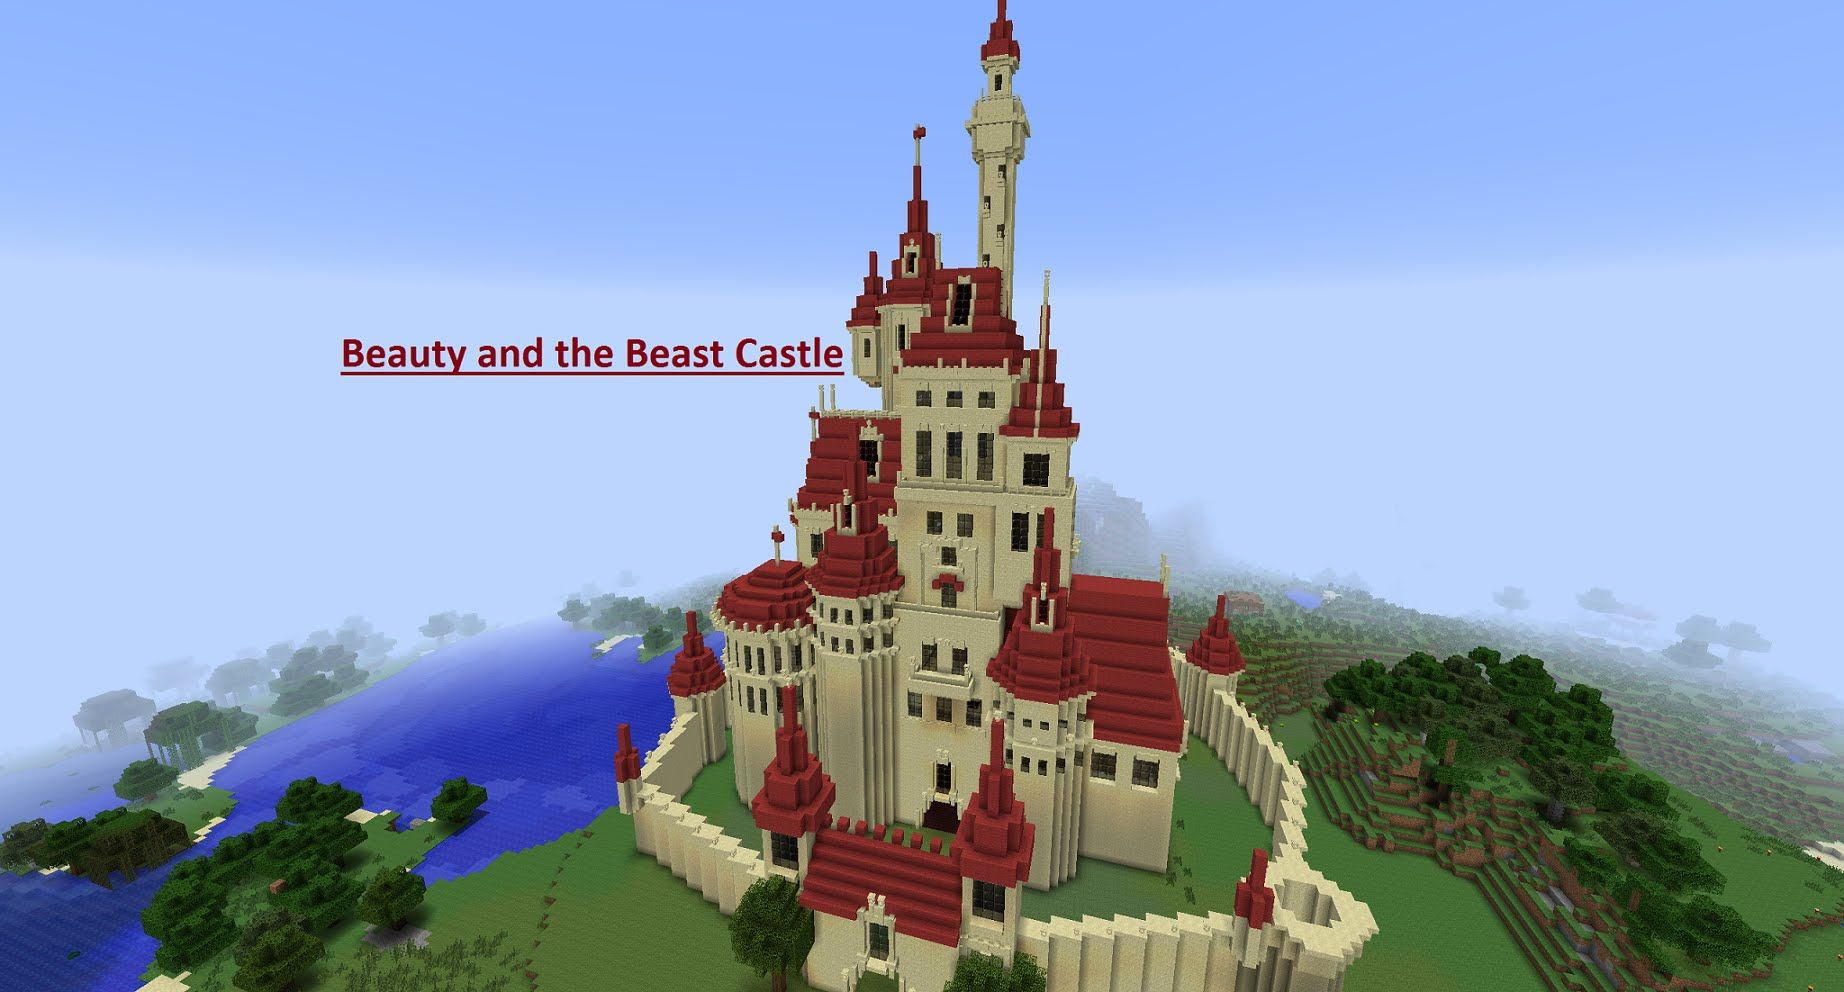 The Beast S Castle Minecraft Beauty And The Beast Castle Youtube Beast S Castle Beauty And The Beast Beast